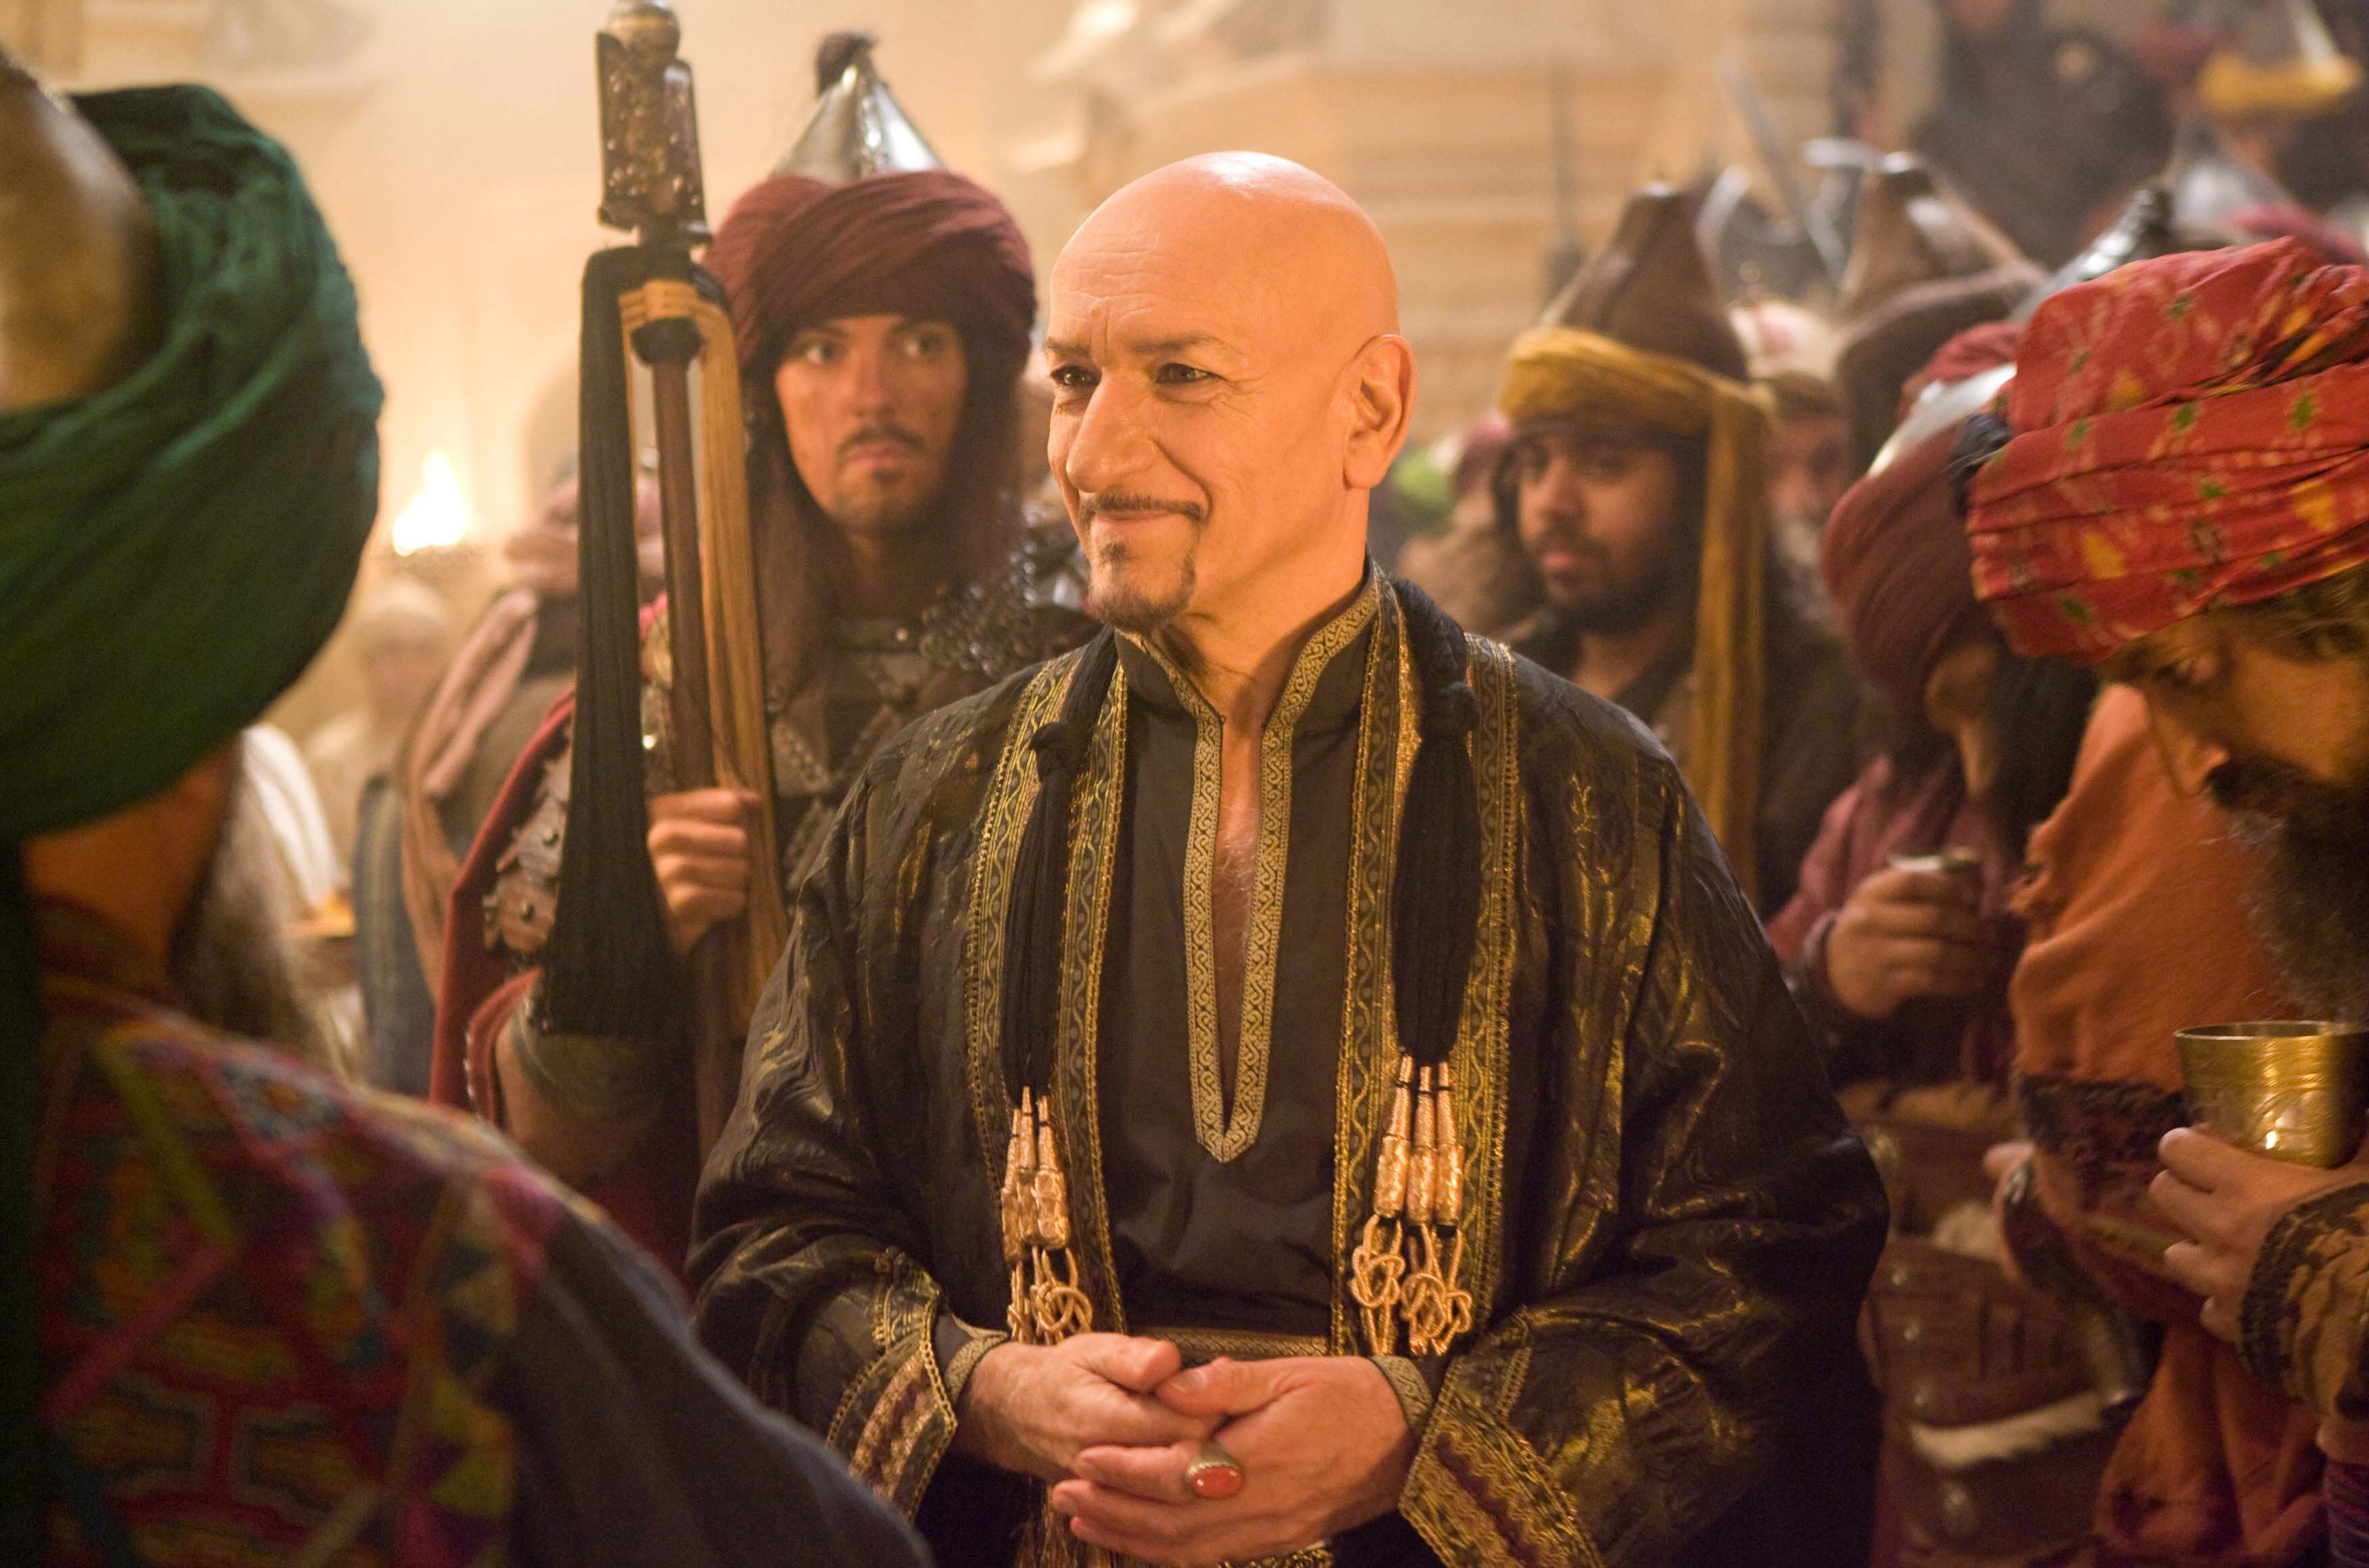 PRINCE OF PERSIA: THE SANDS OF TIME - Sir Ben Kingsley ...